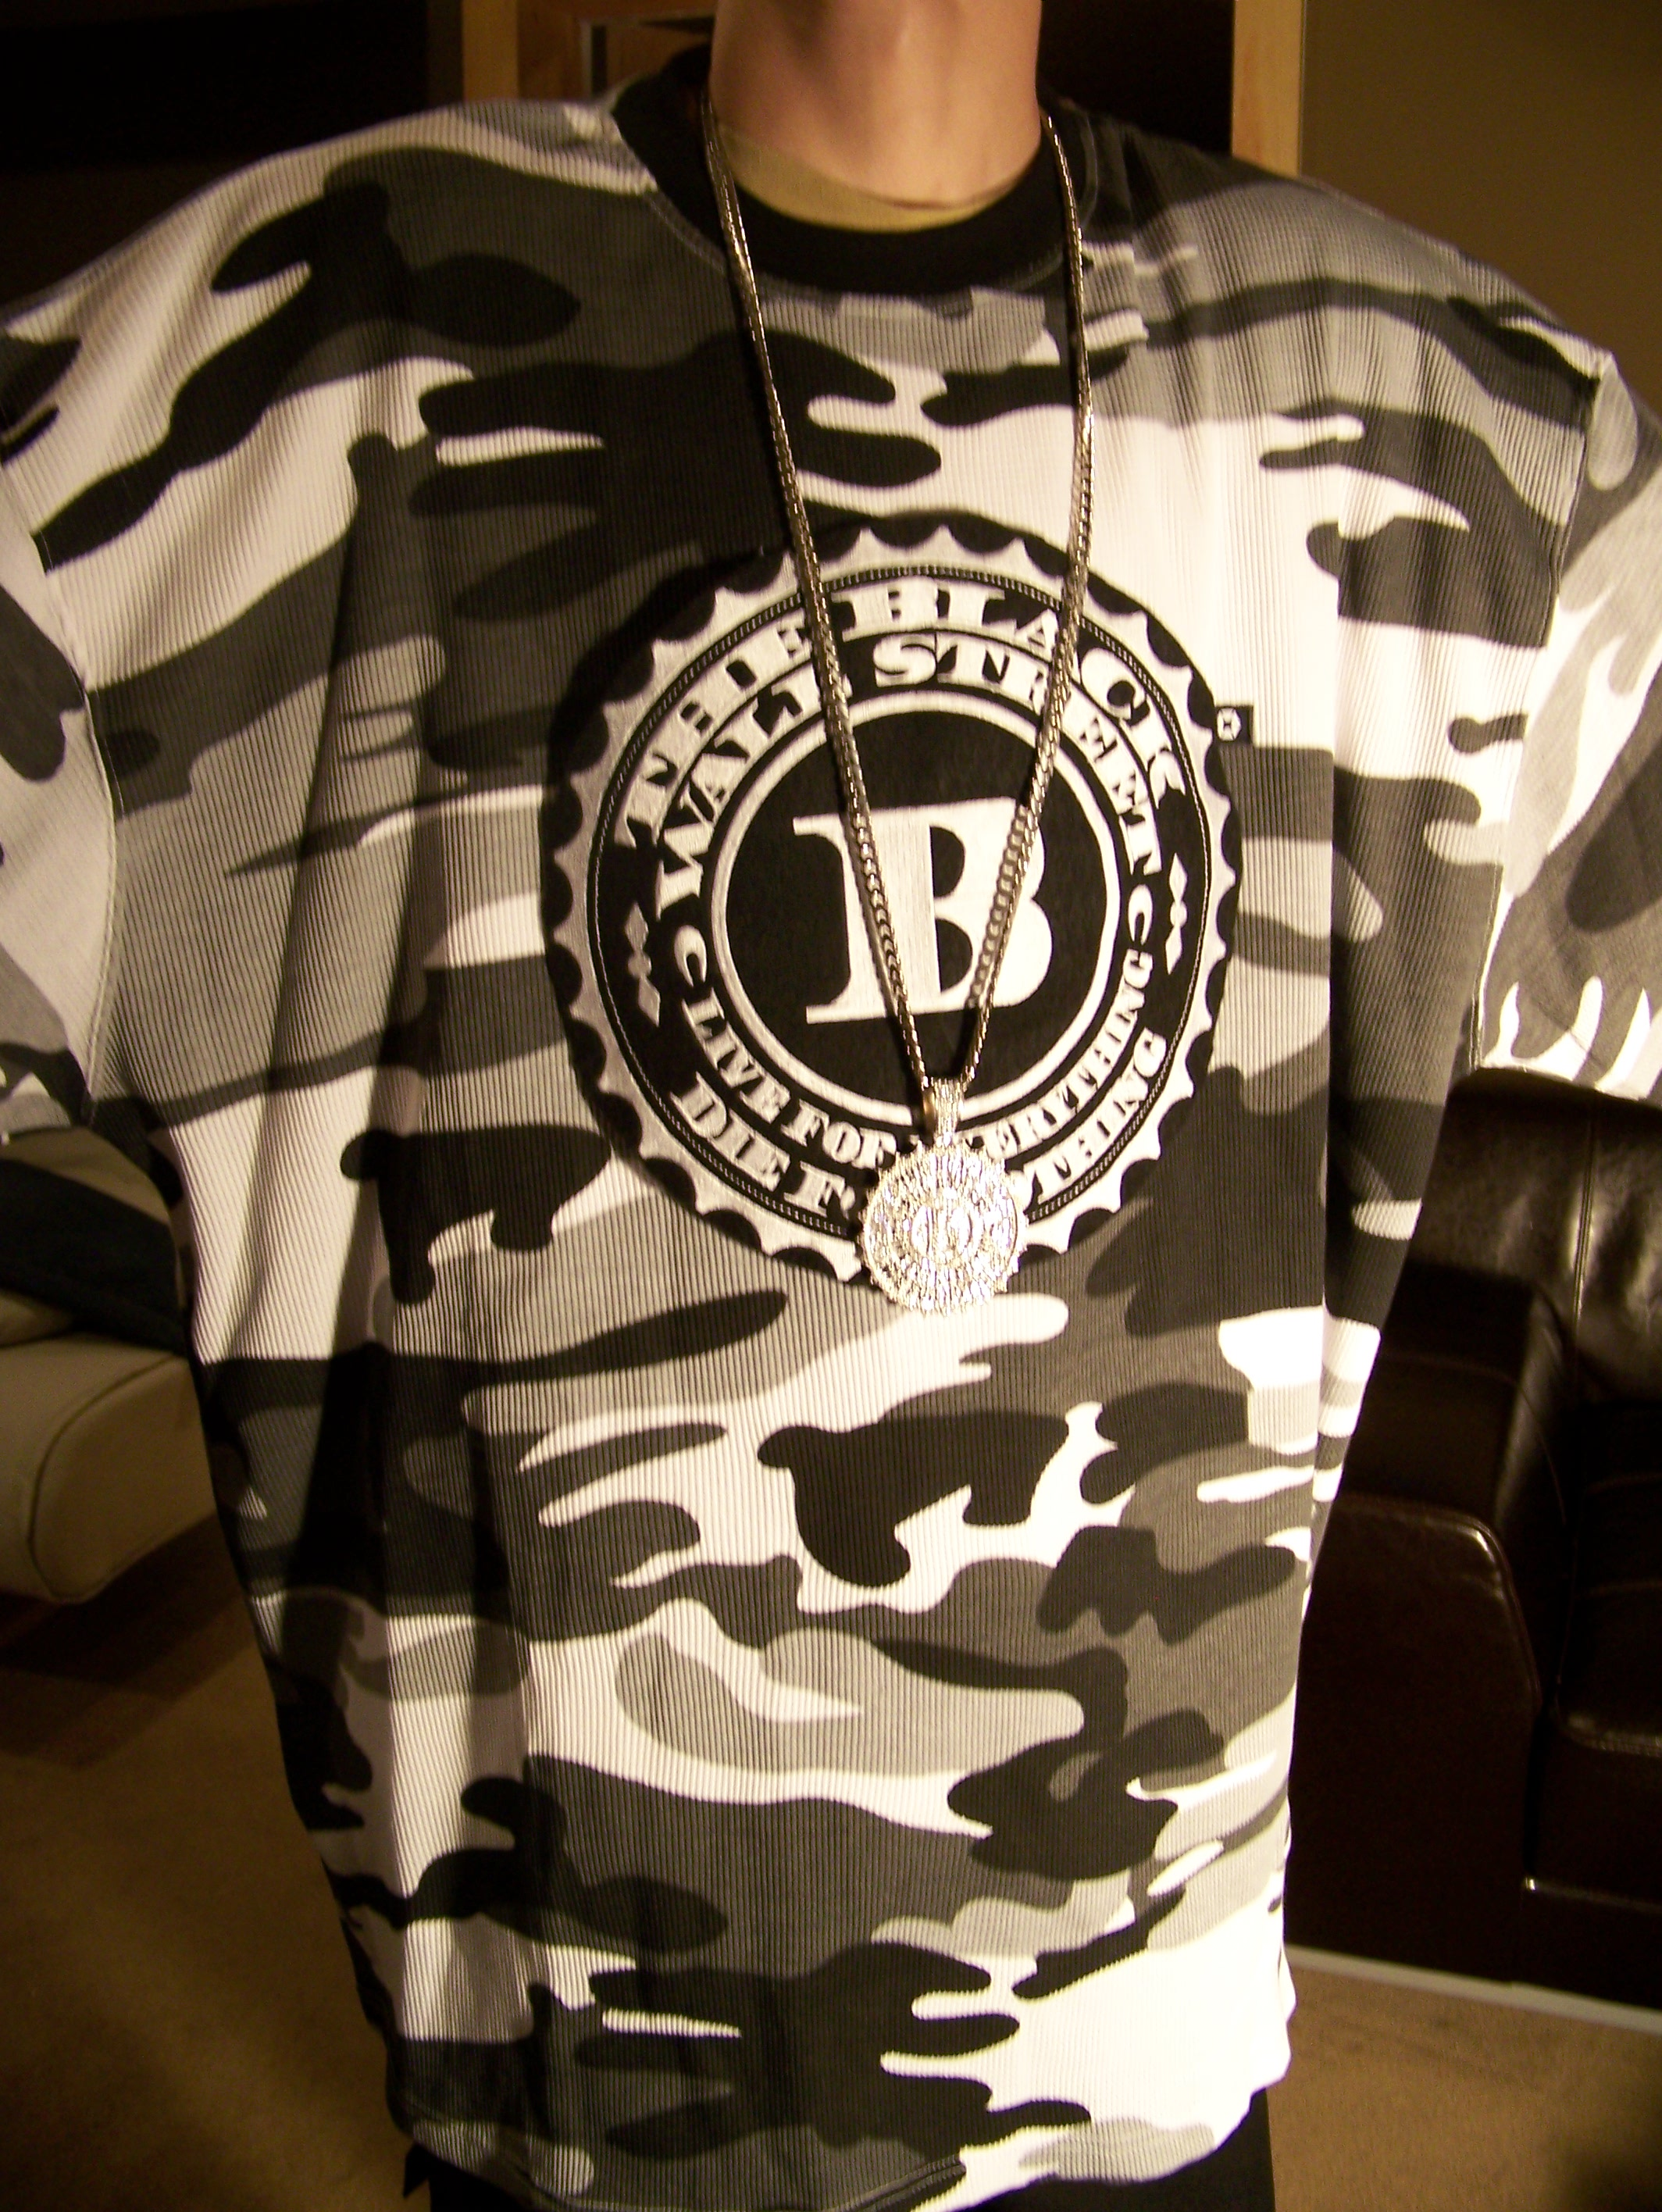 BLACKWALLSTREET LOGO THERMAL - CAMOFLAUGE